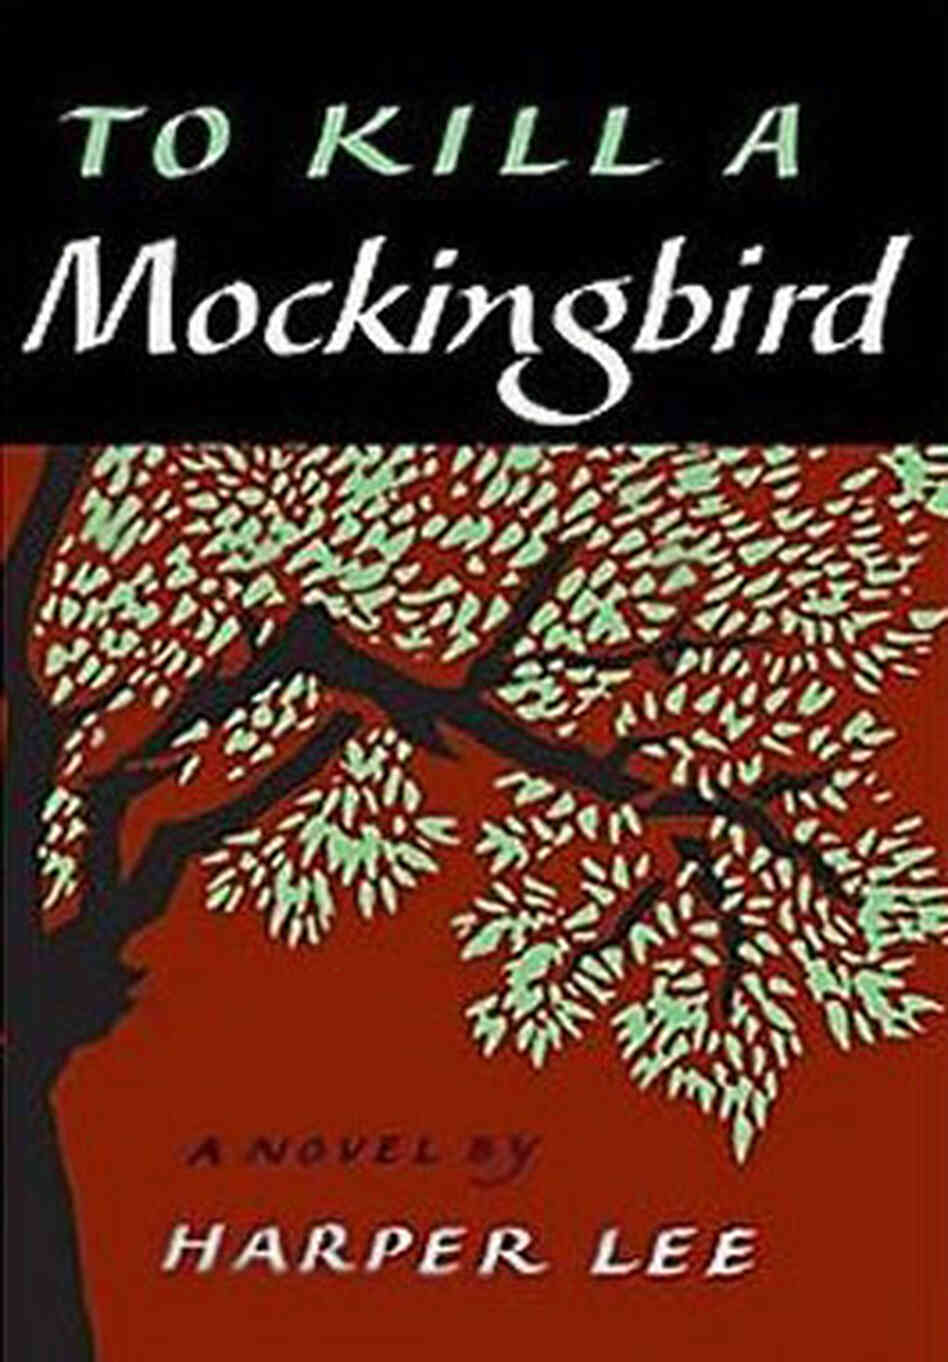 an analysis of the topic of to kill a mockingbird by harper lee 1 show how at least two individual episodes, sections or events in your studied text held your interest as a reader this essay will discuss how two individual events in to kill a.